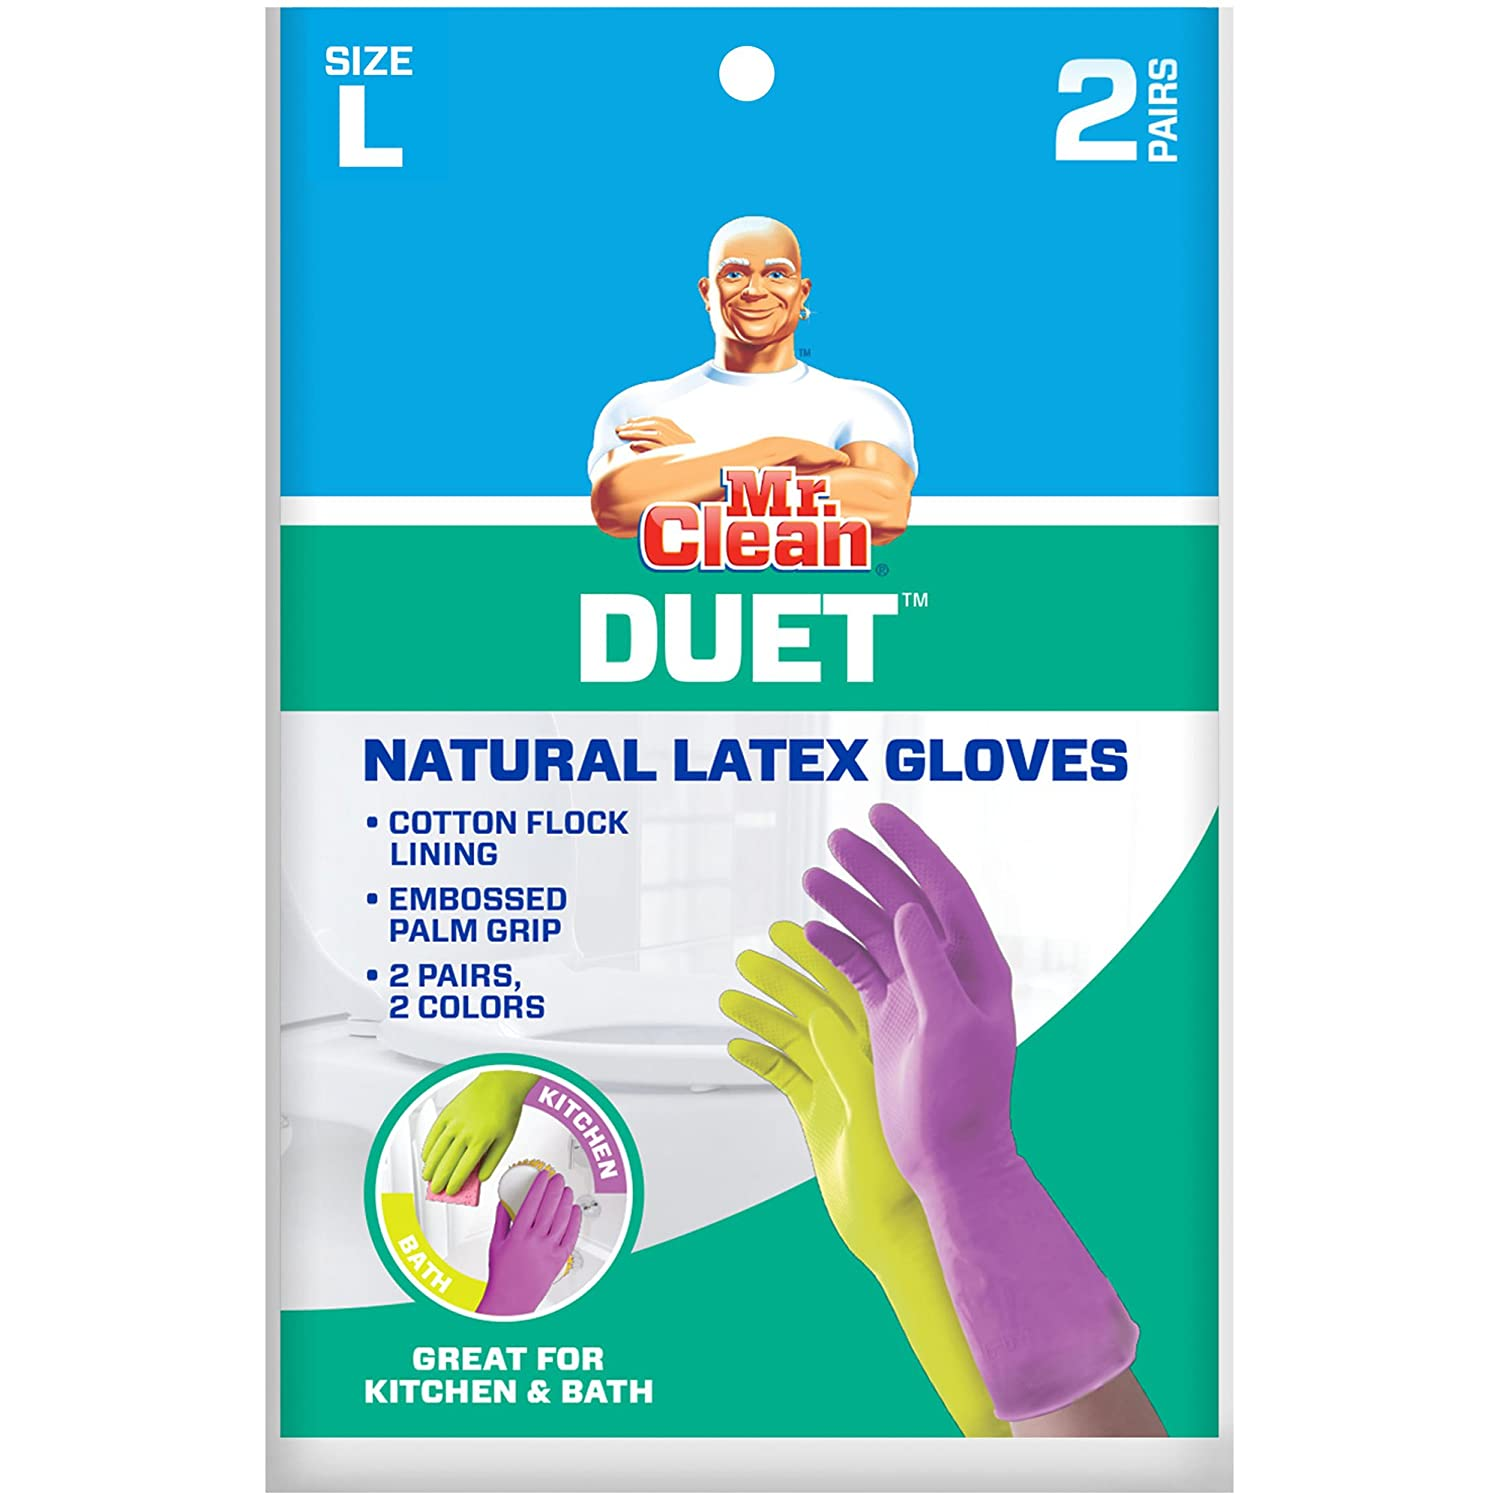 Amazon.com: Mr. Clean Duet, Natural Latex, Beaded Cuff, Cotton Flock ...